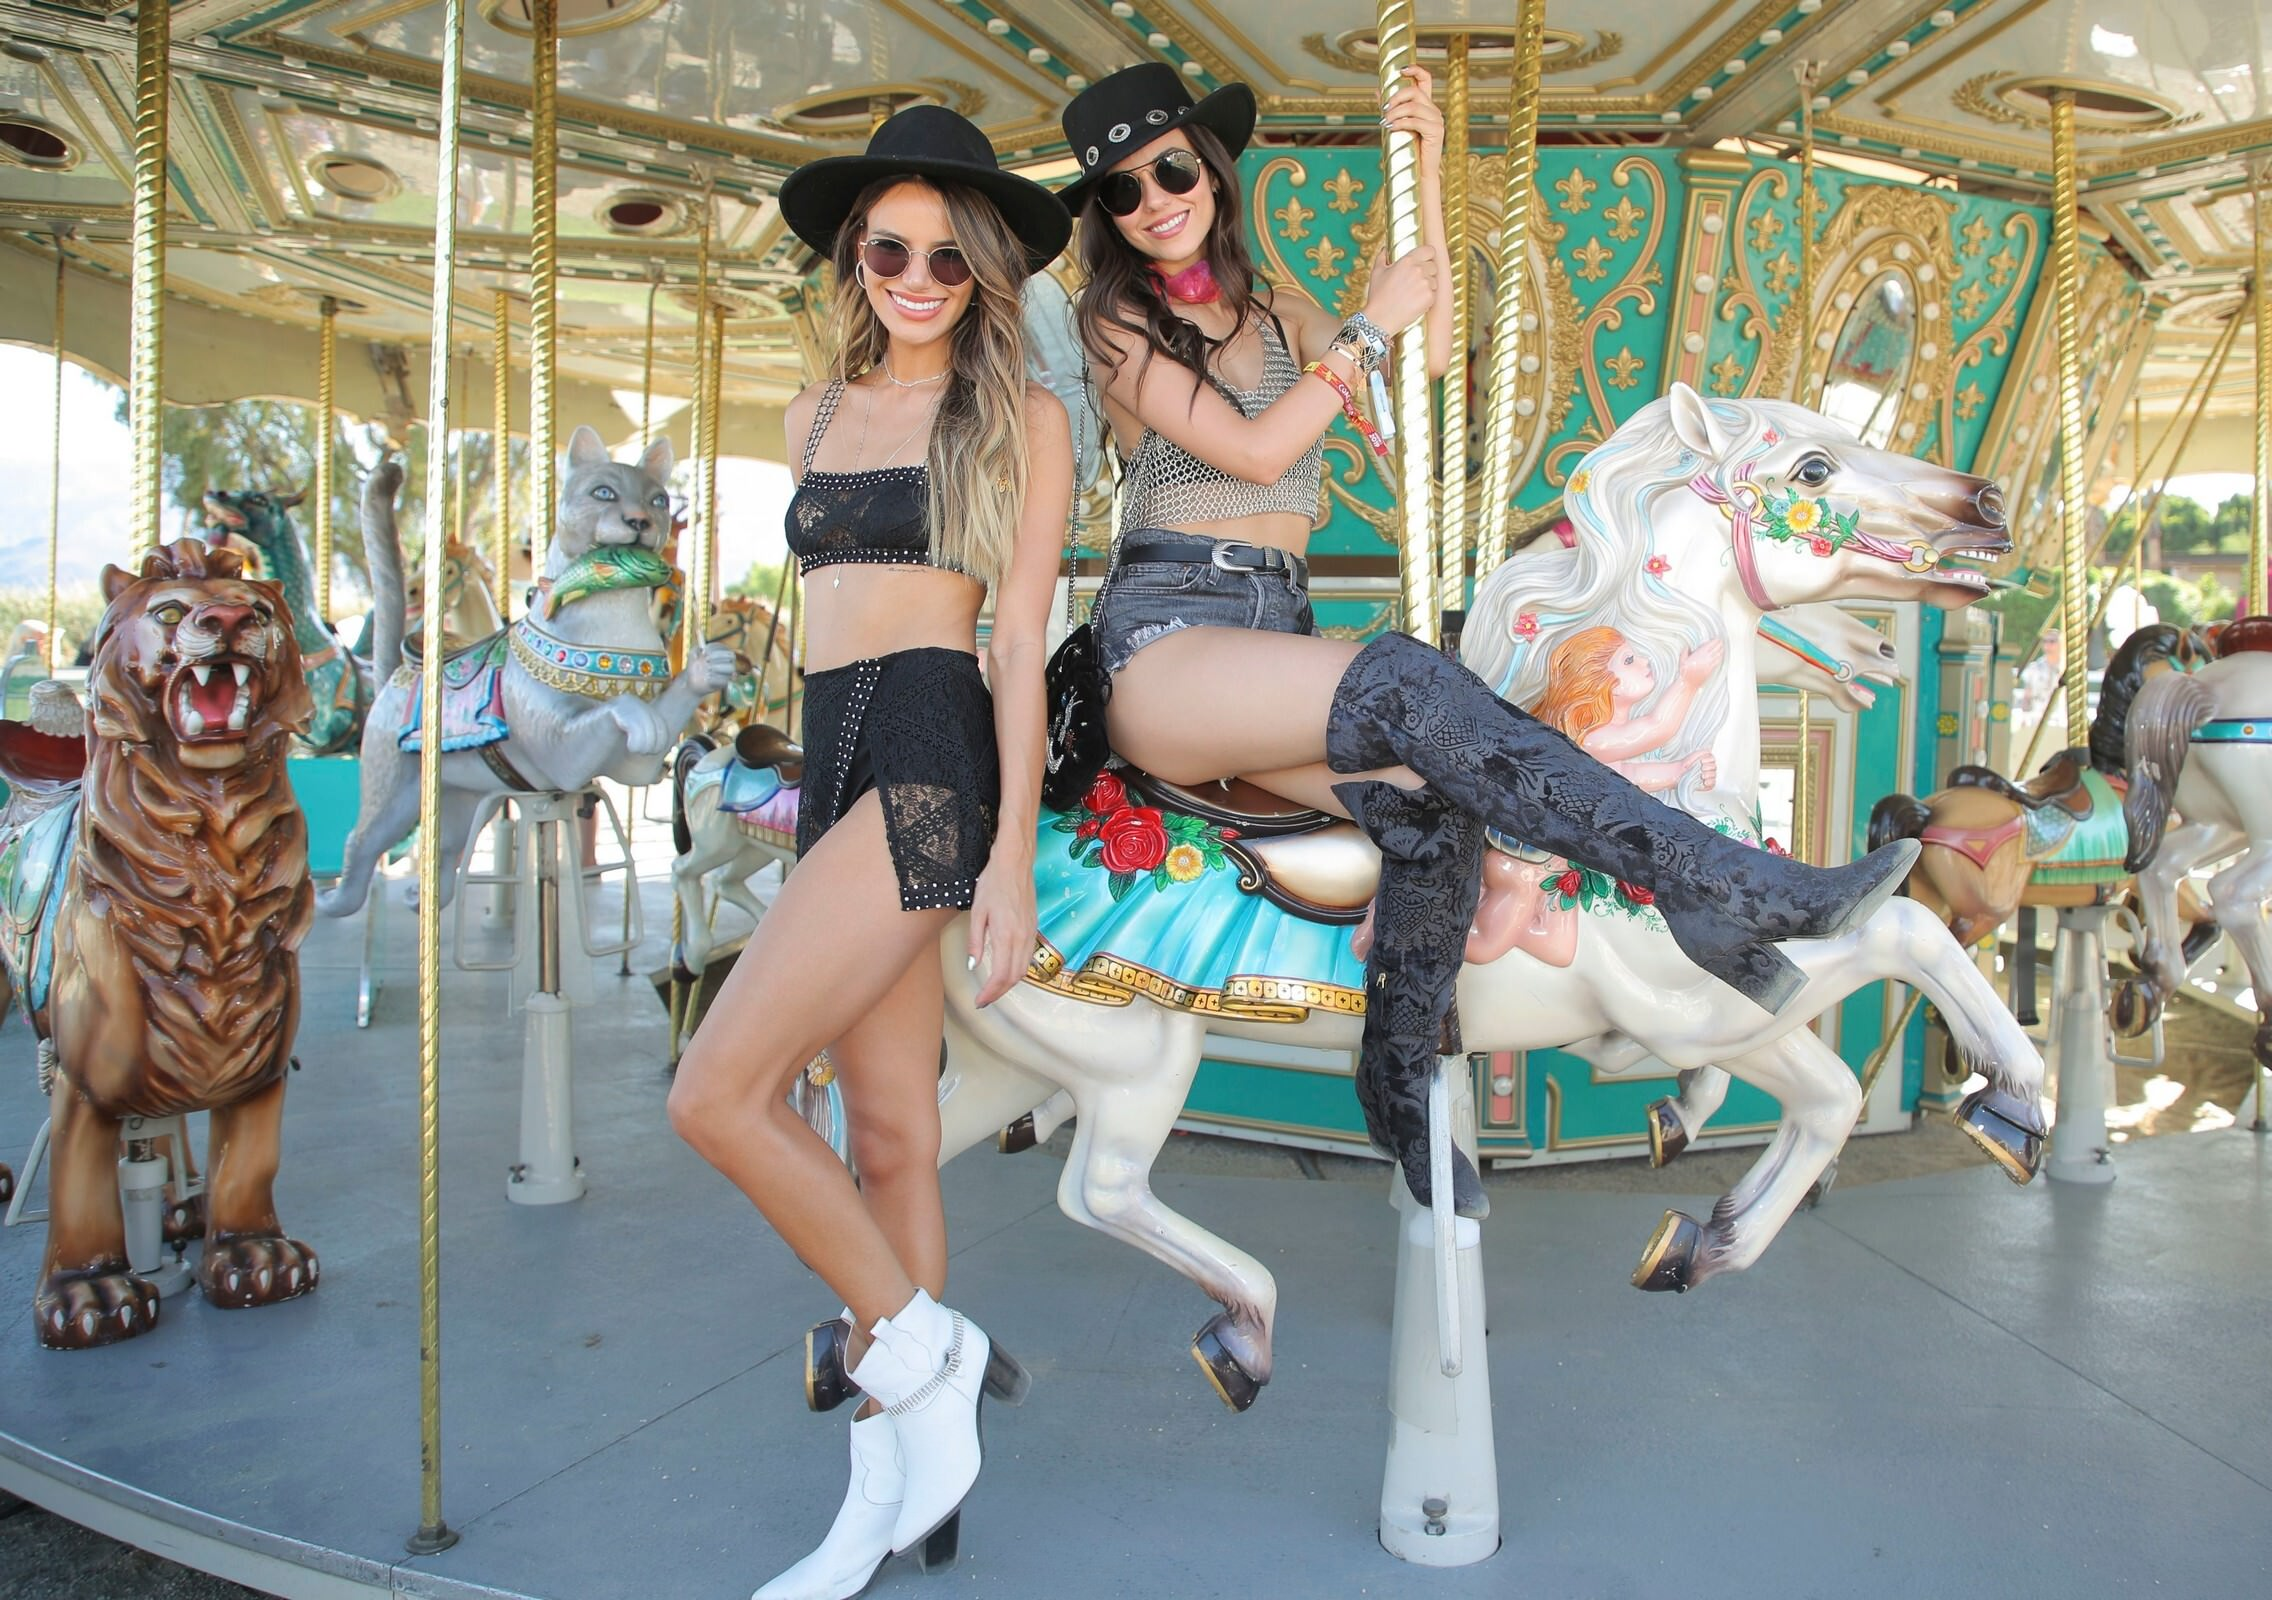 Victoria Justice At Revolve Party Coachella Valley Music And Arts Festival